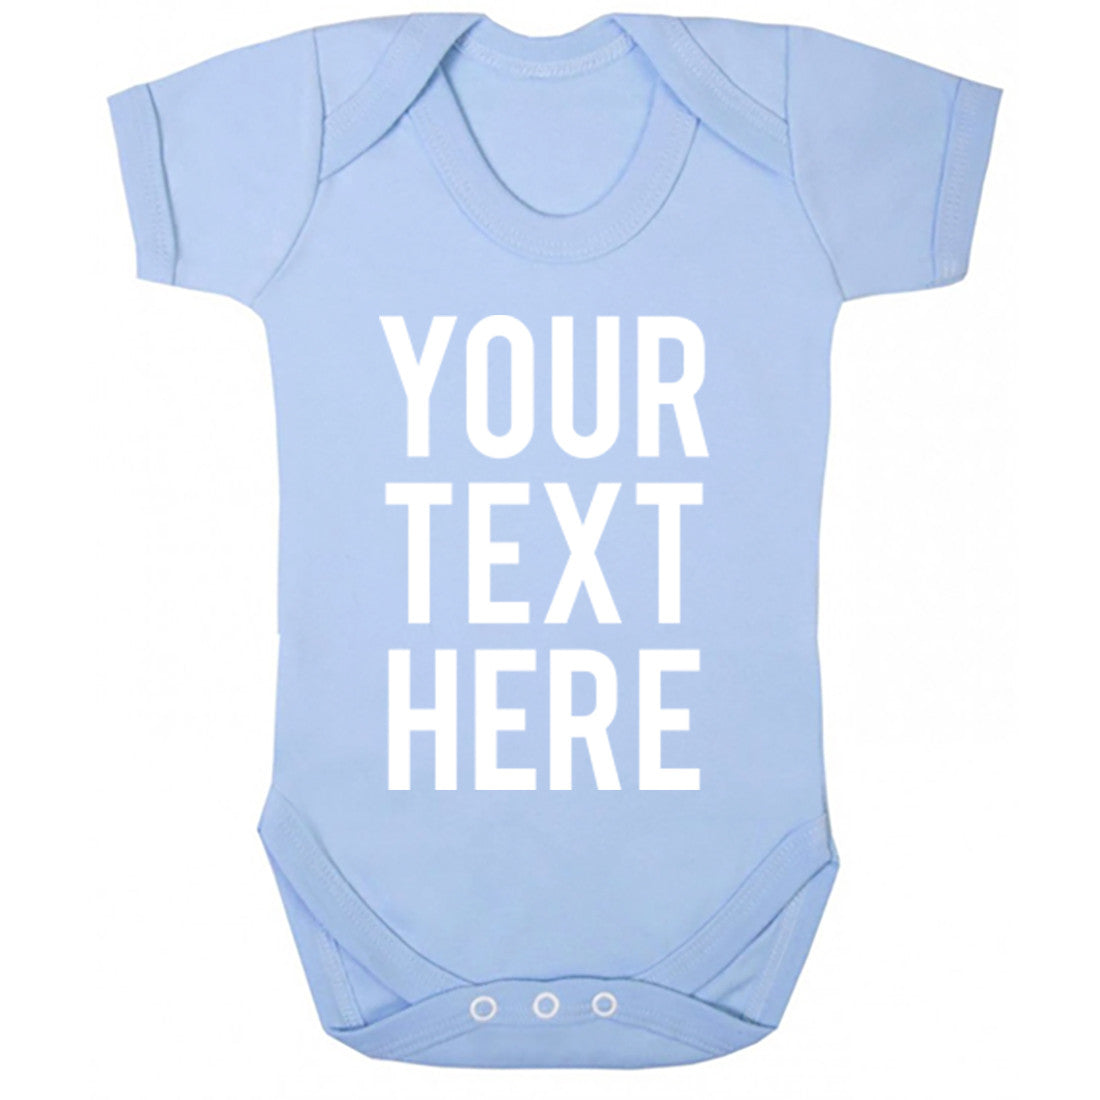 Your Text Here Baby Vest K0001 - Illustrated Identity Ltd.